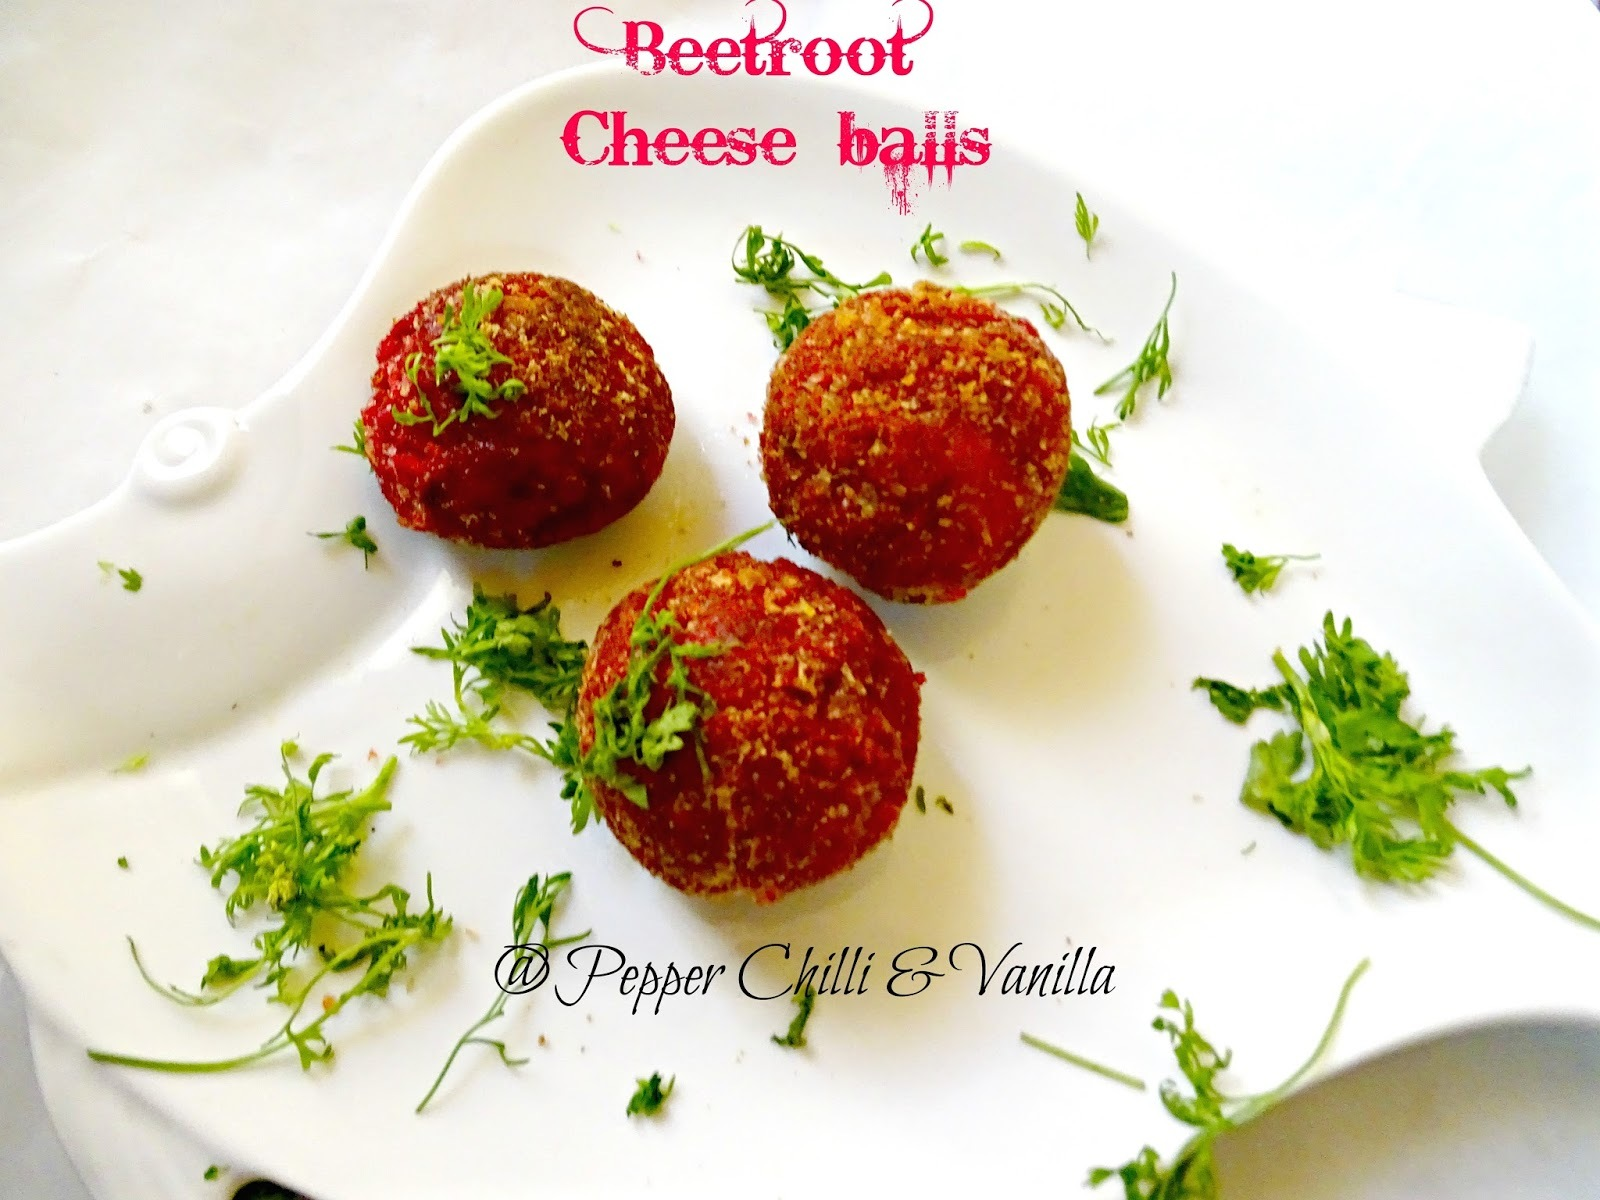 Beetroot Cheese Balls /Beetroot Cheese Cutlets in Appe Pan.